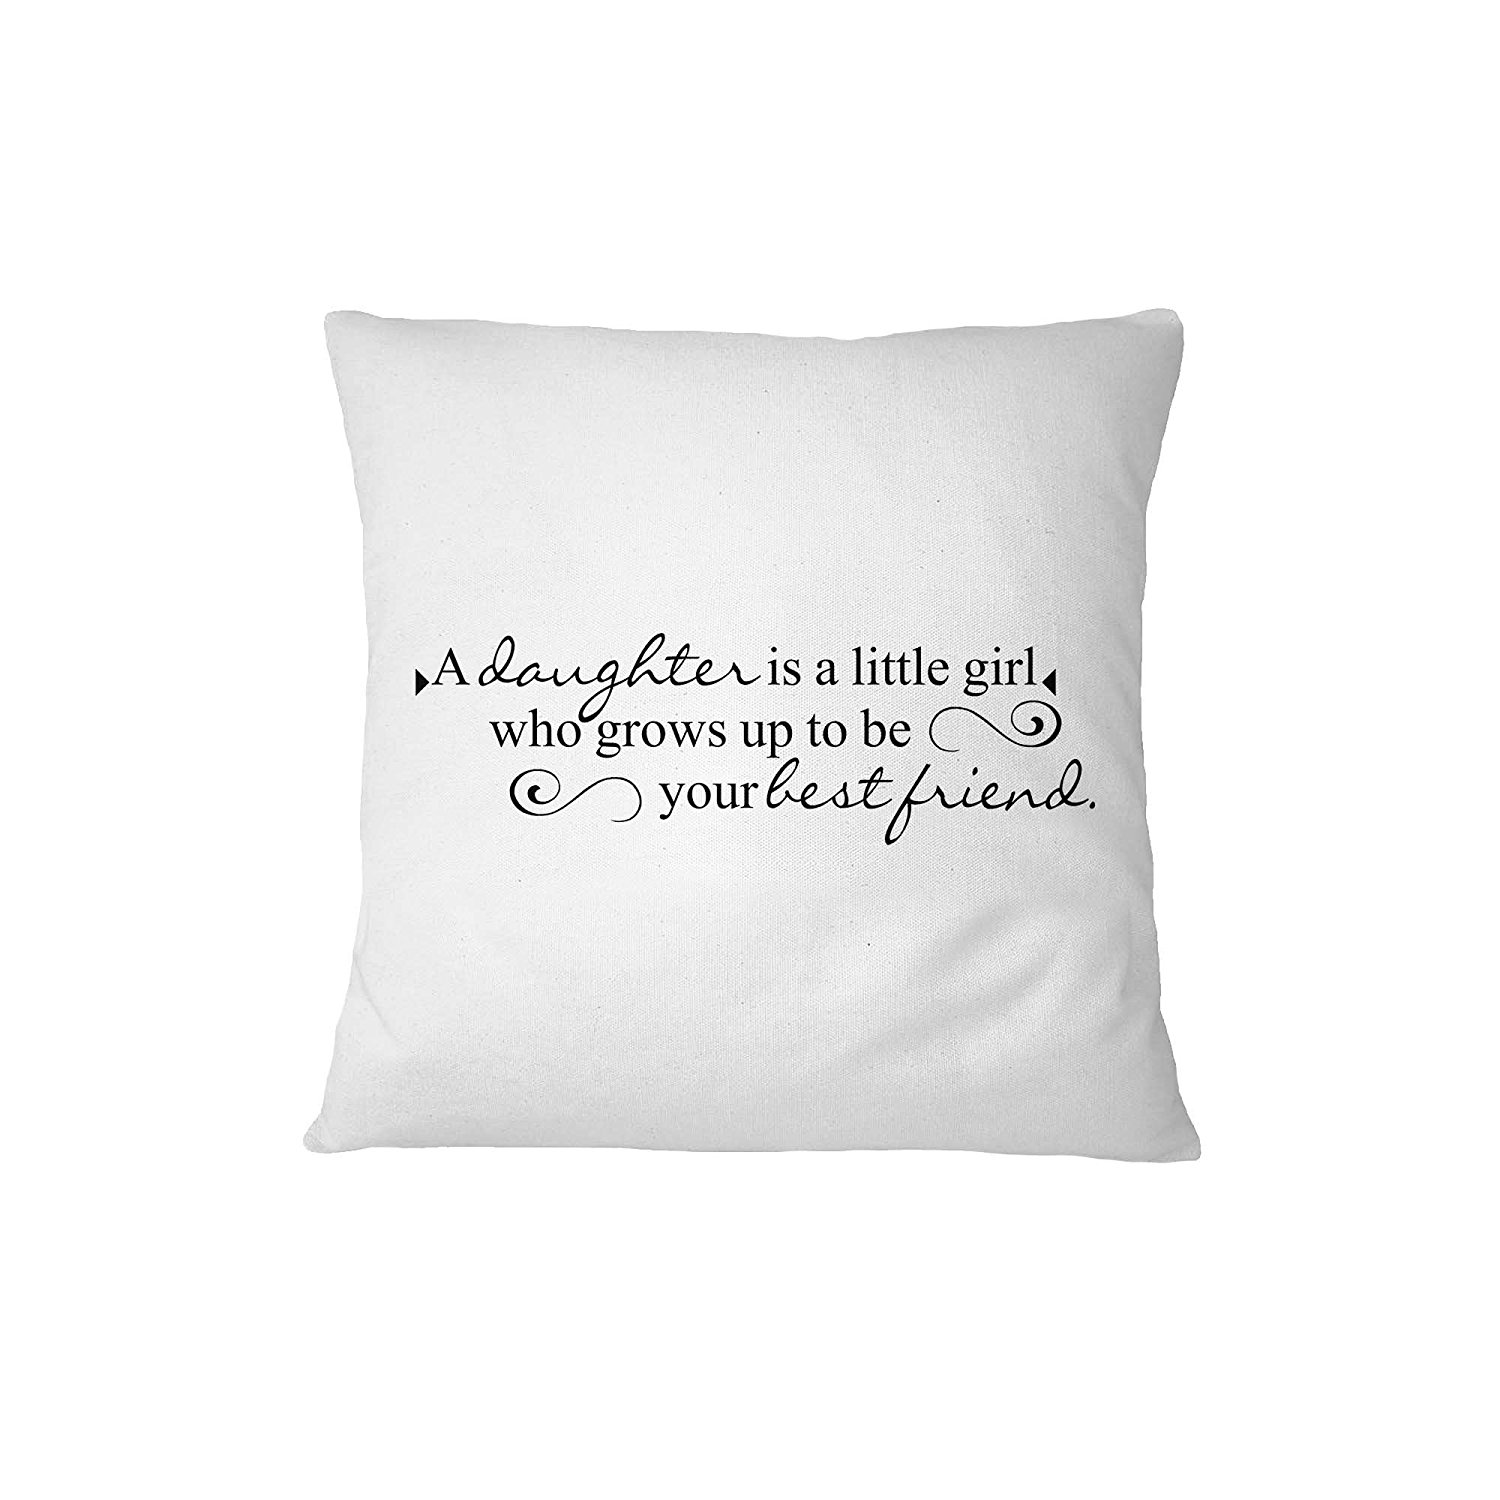 A Daughter Is A Little Girl Who Grows Up To Be Your Best Friend Pillow Cover